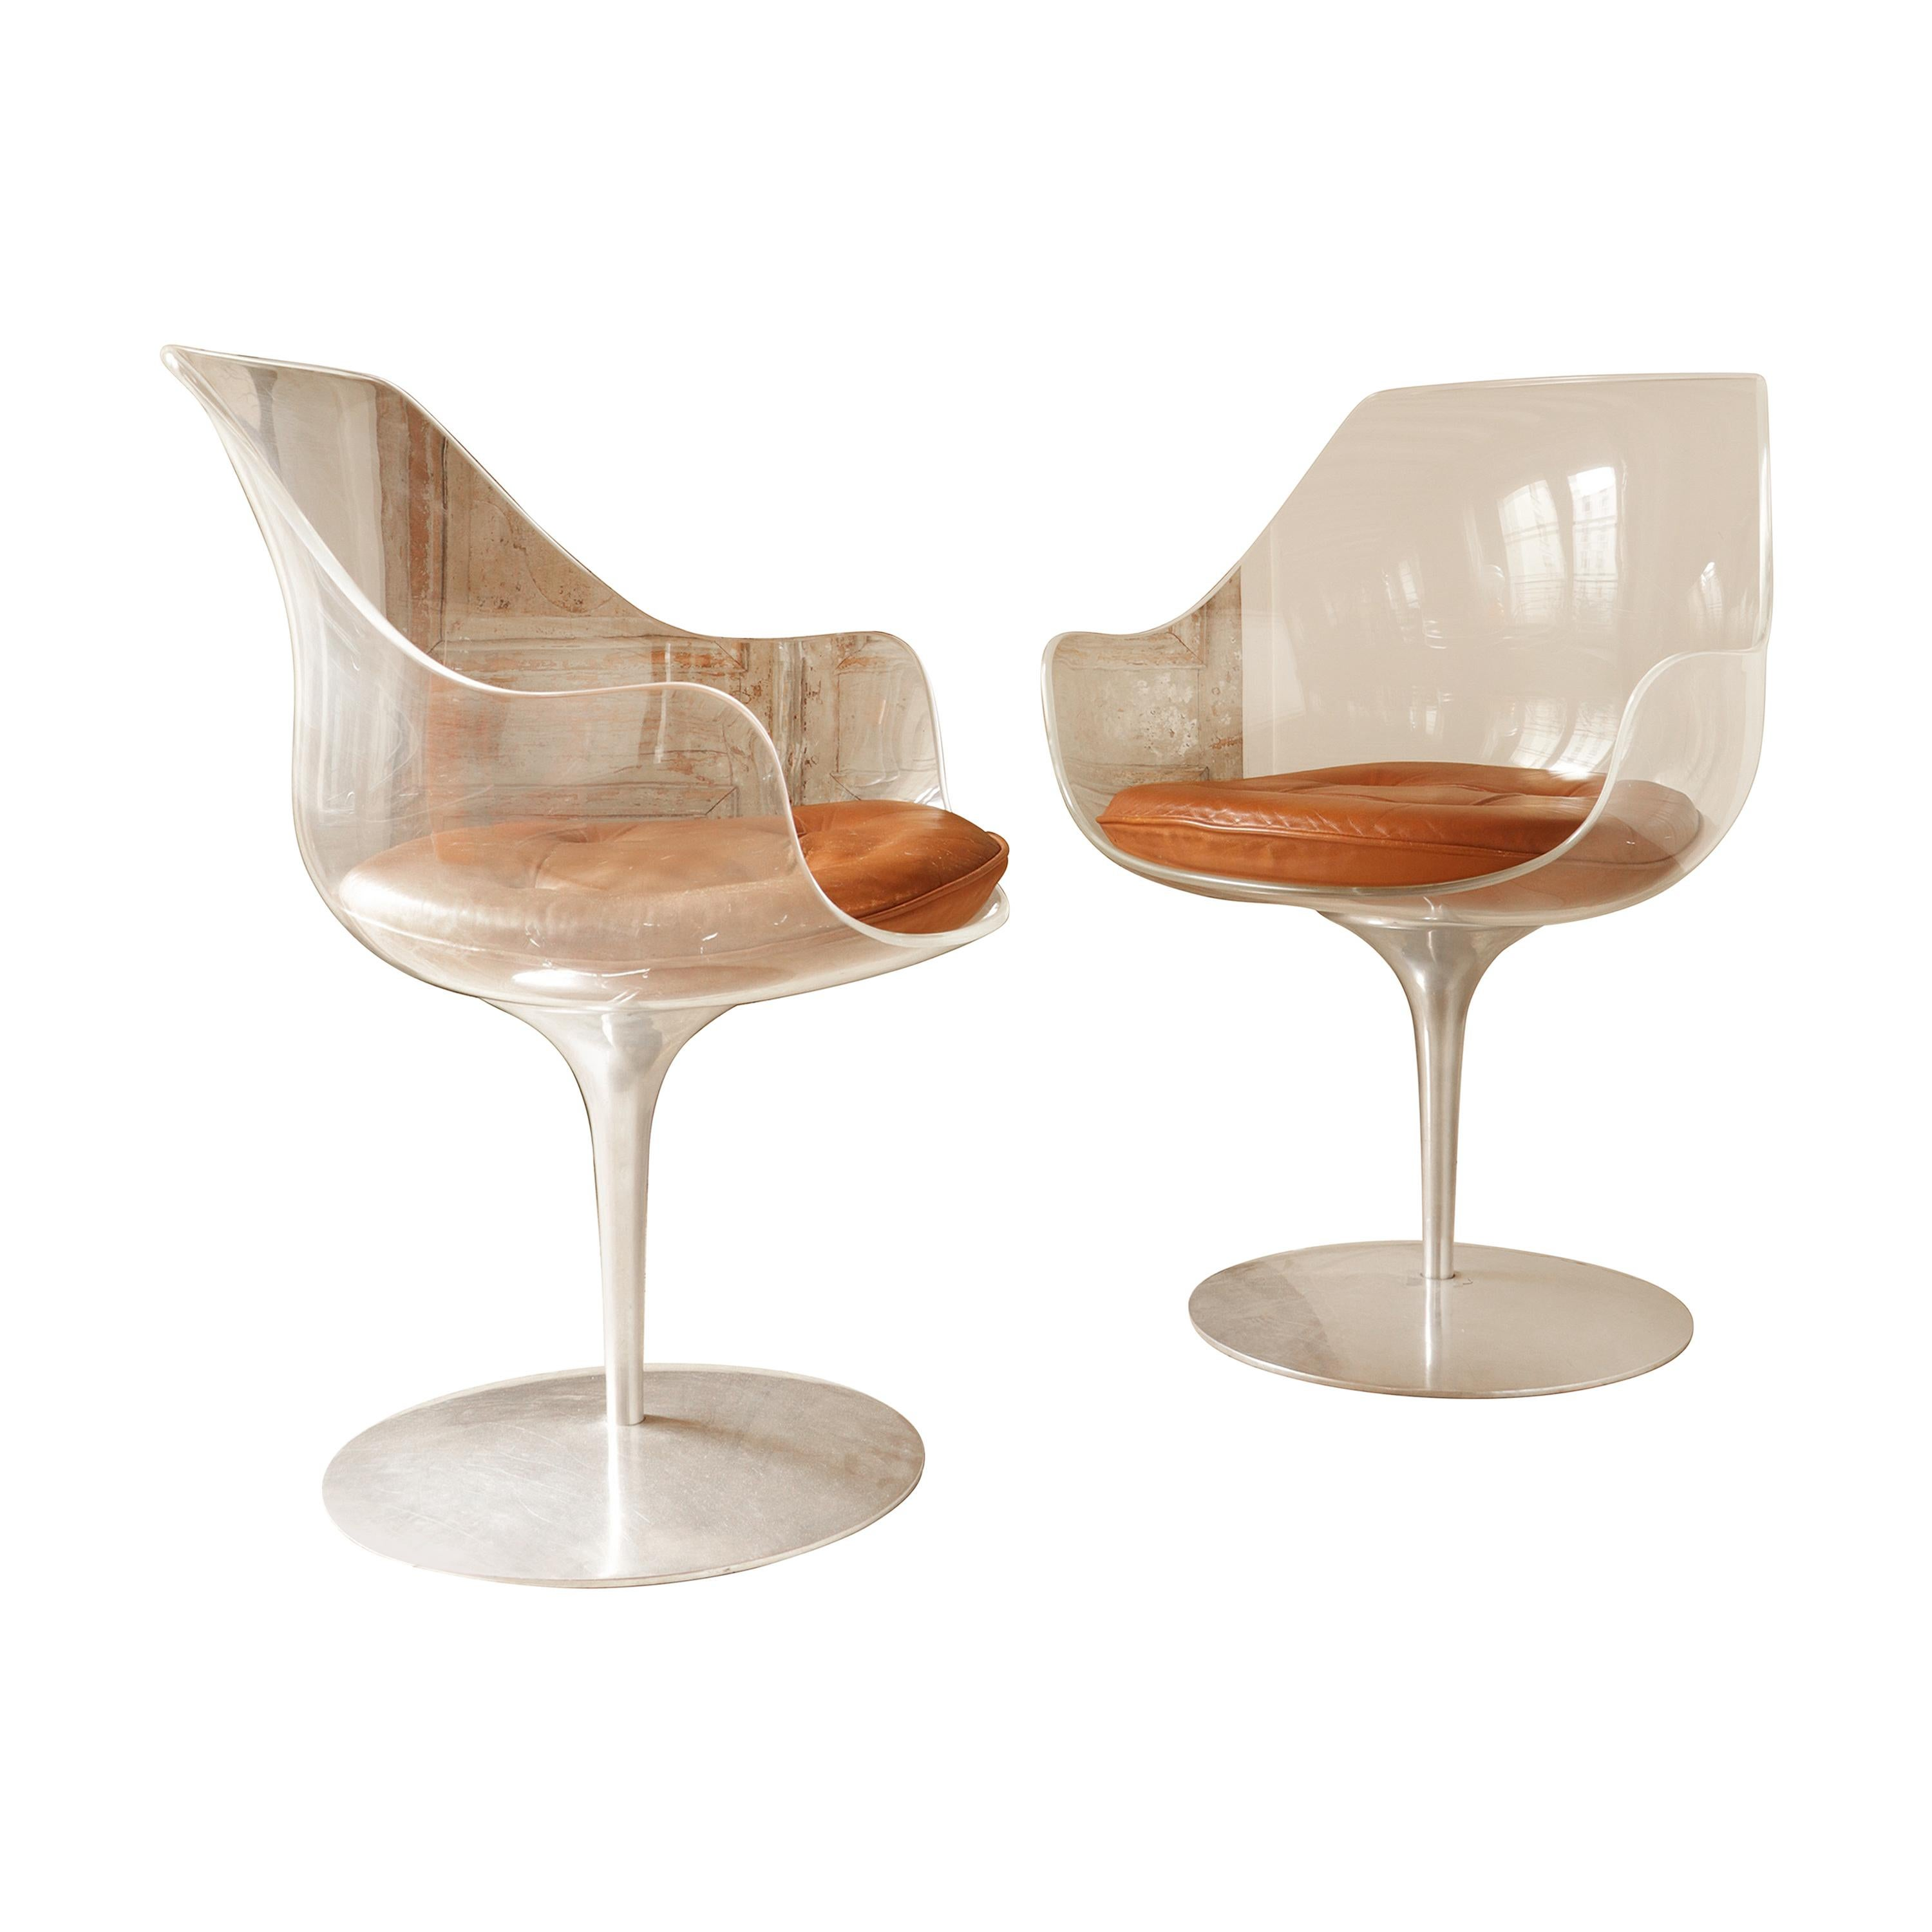 Pair of Champagne Chairs, Estelle and Erwin Laverne